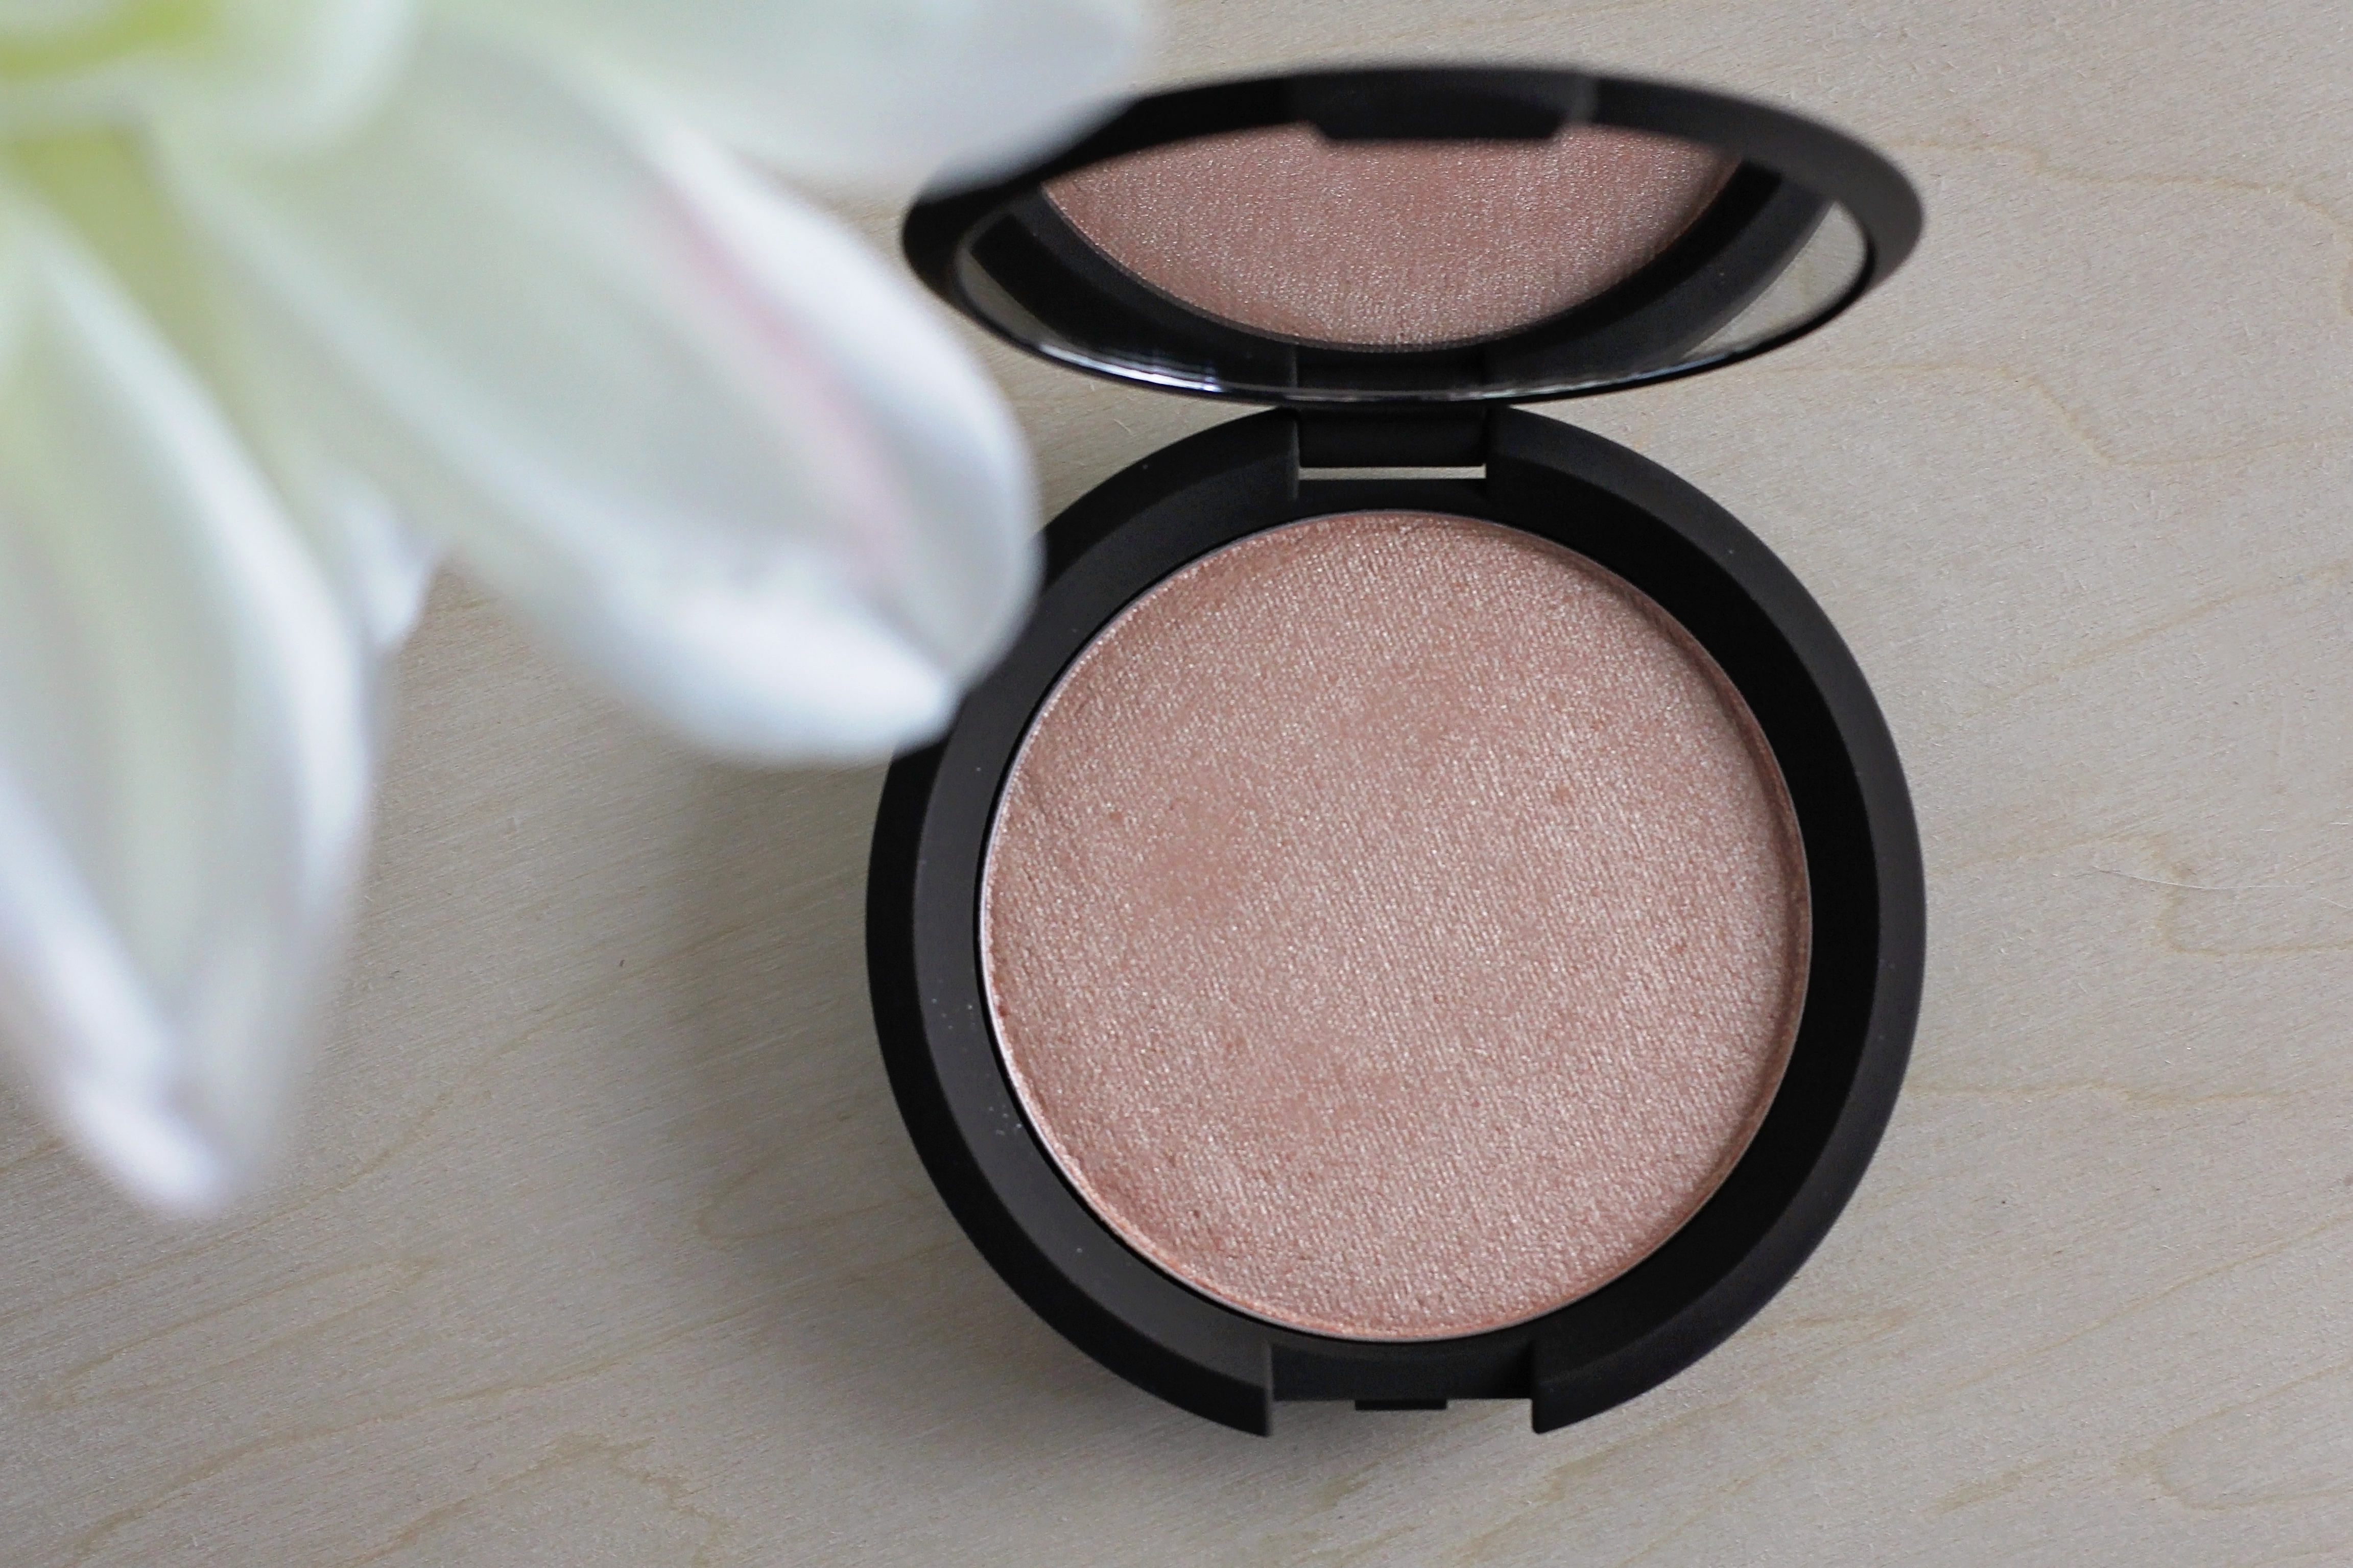 Becca x Jaclyn Hill Shimmering Skin Perfector Pressed – Champagne Pop